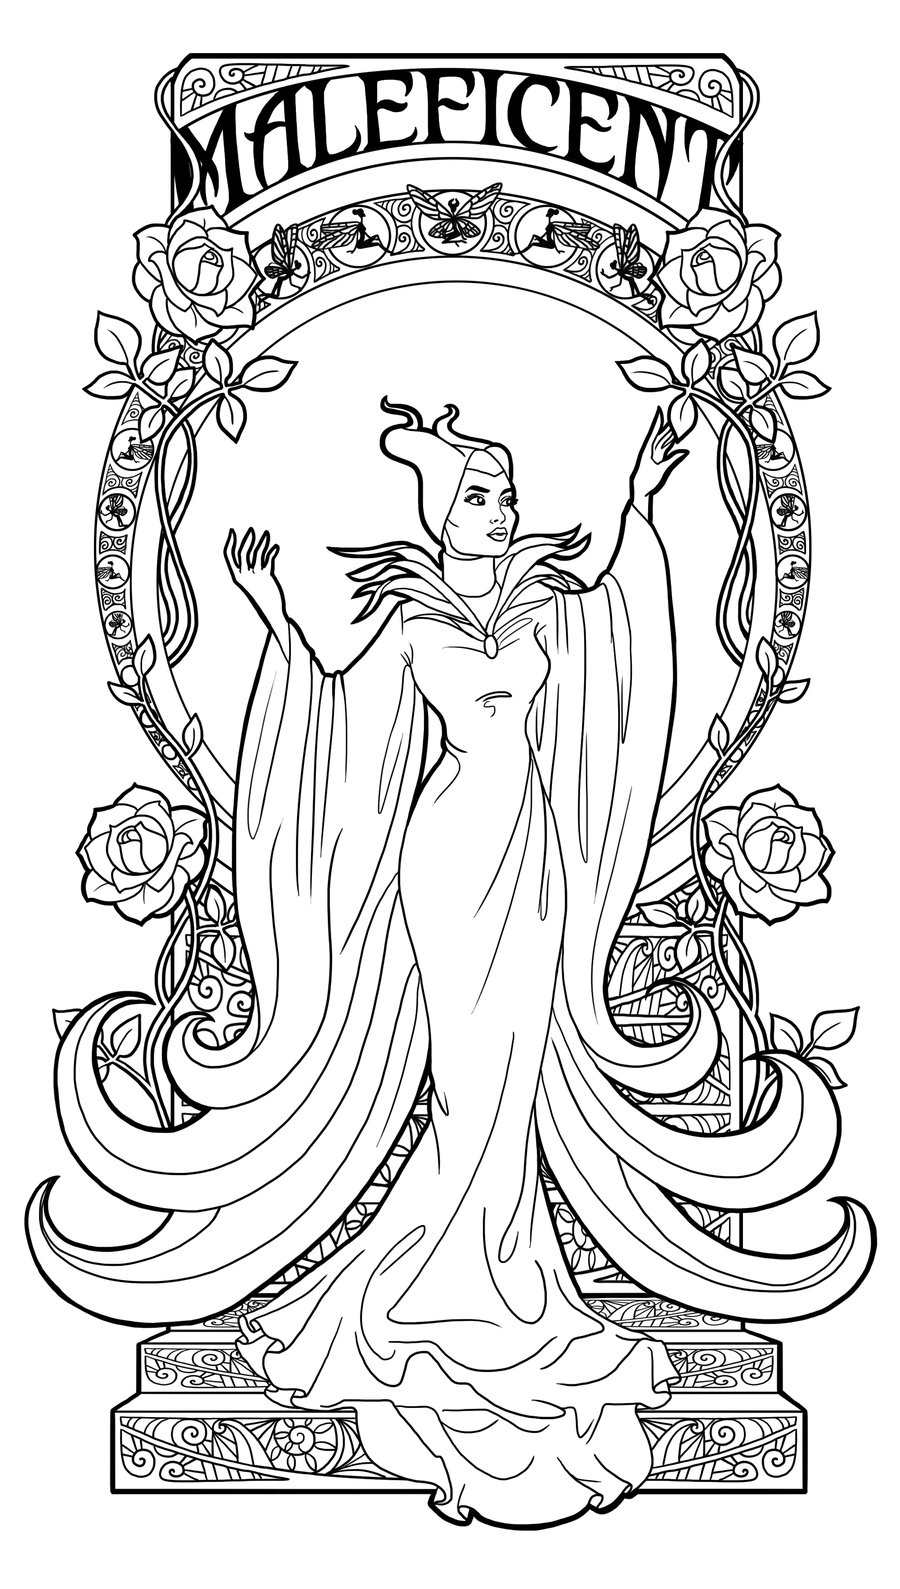 maleficent coloring pages maleficent dragon coloring pages at getdrawings free maleficent coloring pages